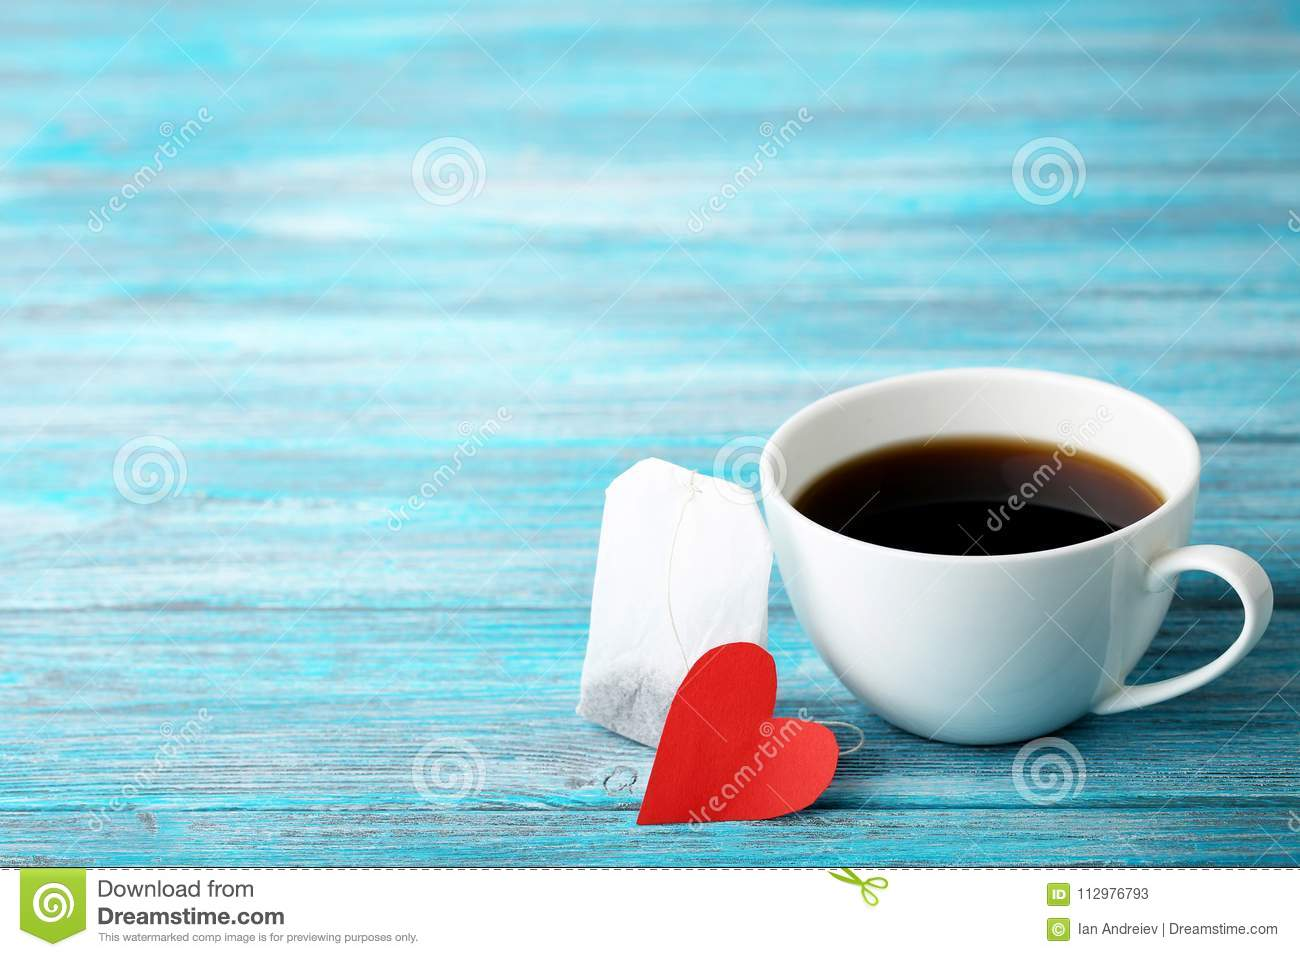 Cup of coffee with red heart